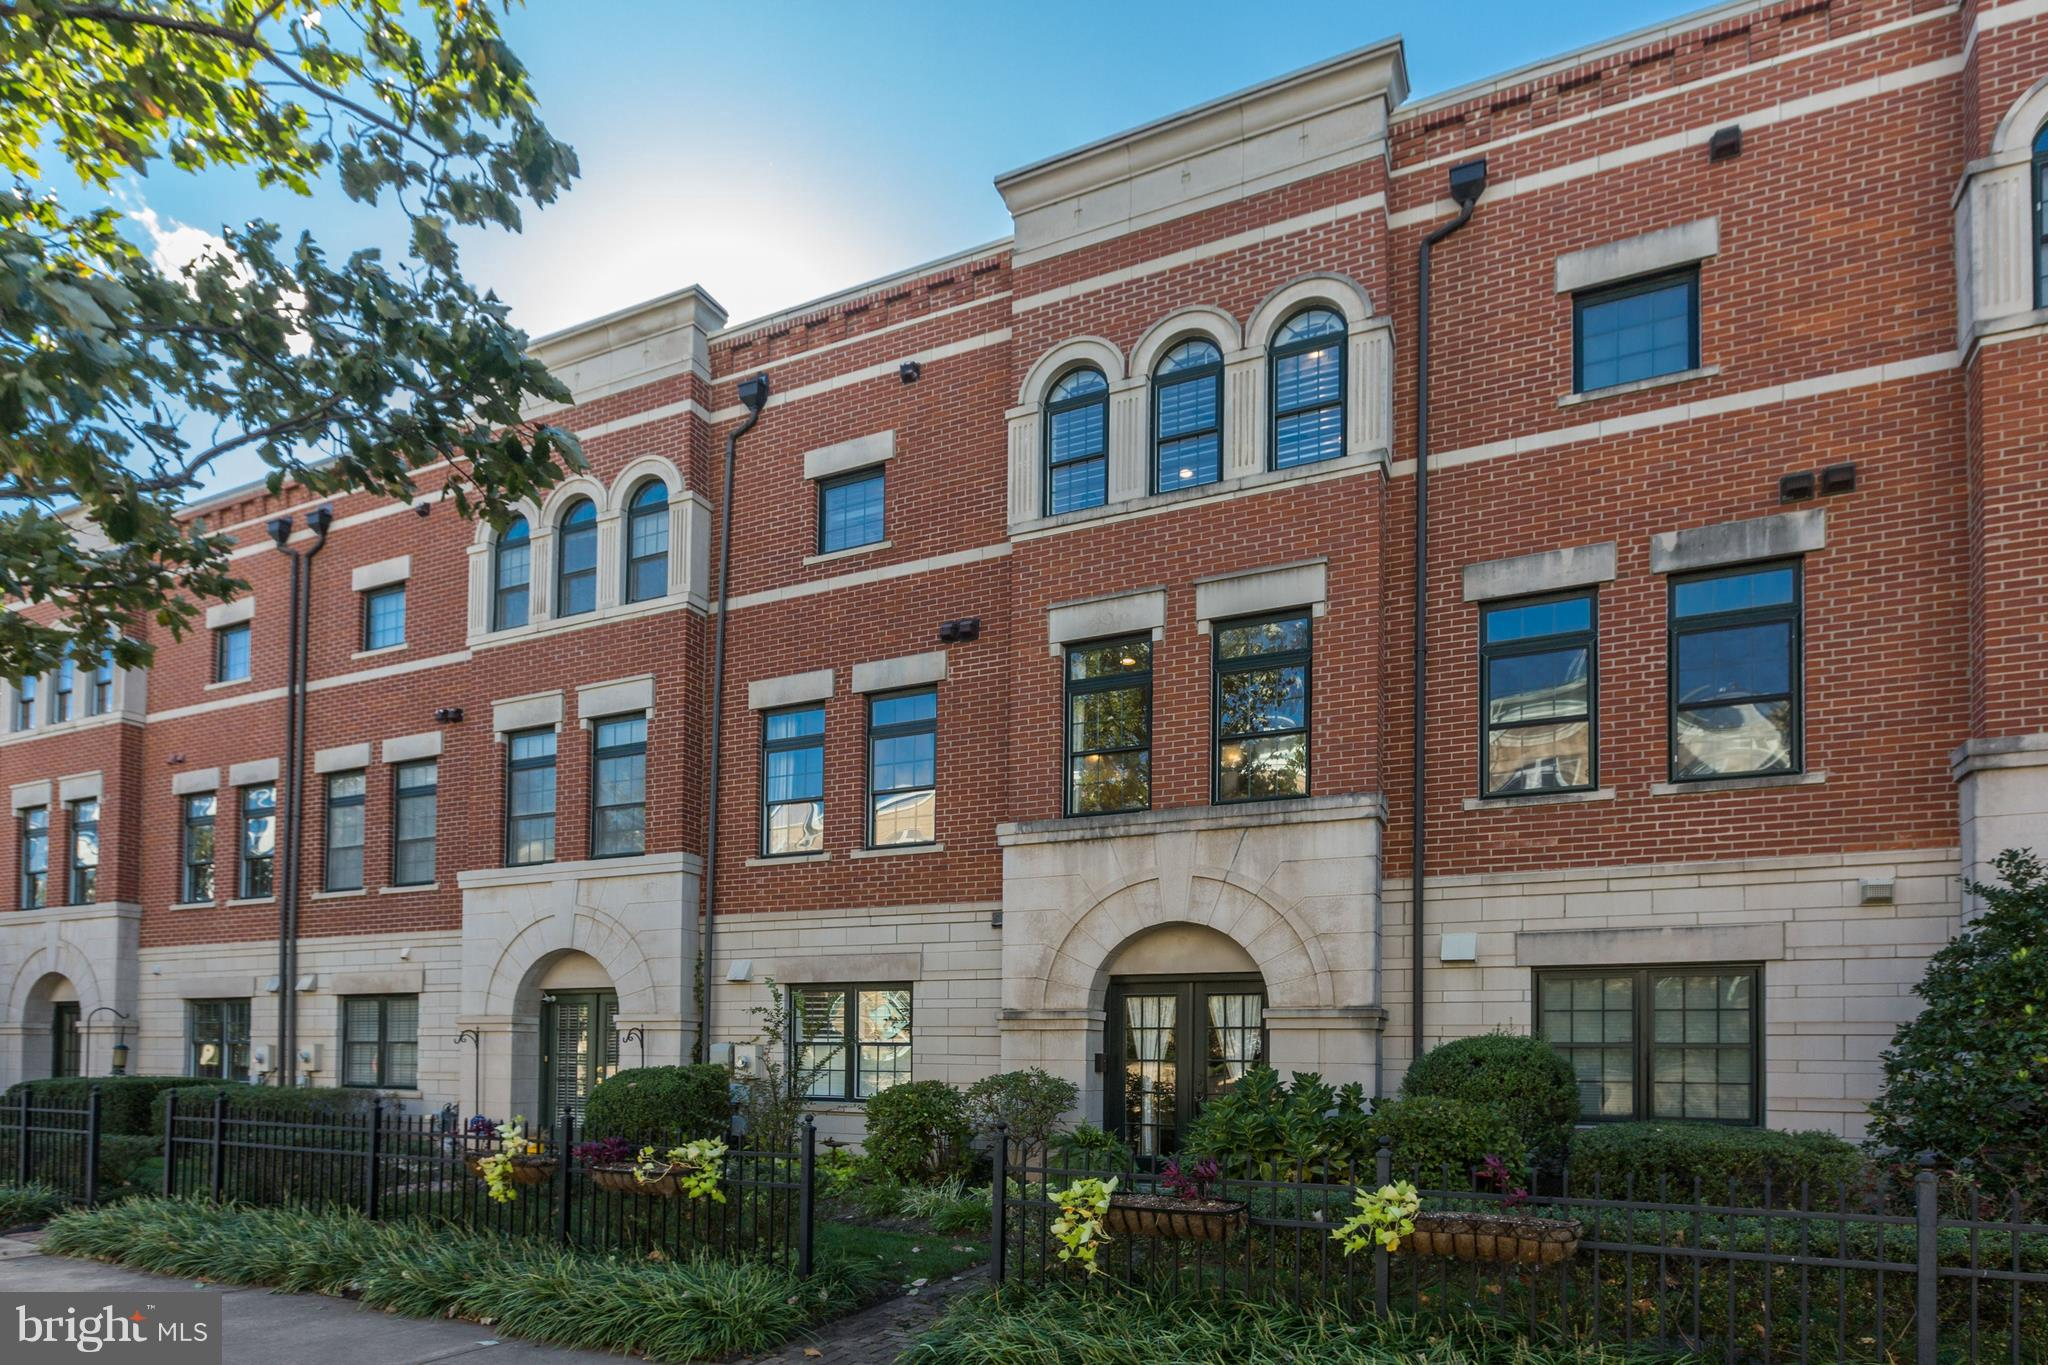 Stunning townhouse with loft and rooftop terrace across the street from Reston Town Center! Hardwood flooring, High-end Viking and Bosch appliances, custom-cut plantation shutters, new roof, HVAC, and carpeting (including custom-cut rugs for family room/other spaces). Two gas fireplaces, including one in the sitting area of the master bedroom! This property is immaculate and completely move-in ready!  Take advantage of all Reston Town Center has to offer, right outside your front door!  Metro stop will be a half mile down the street!